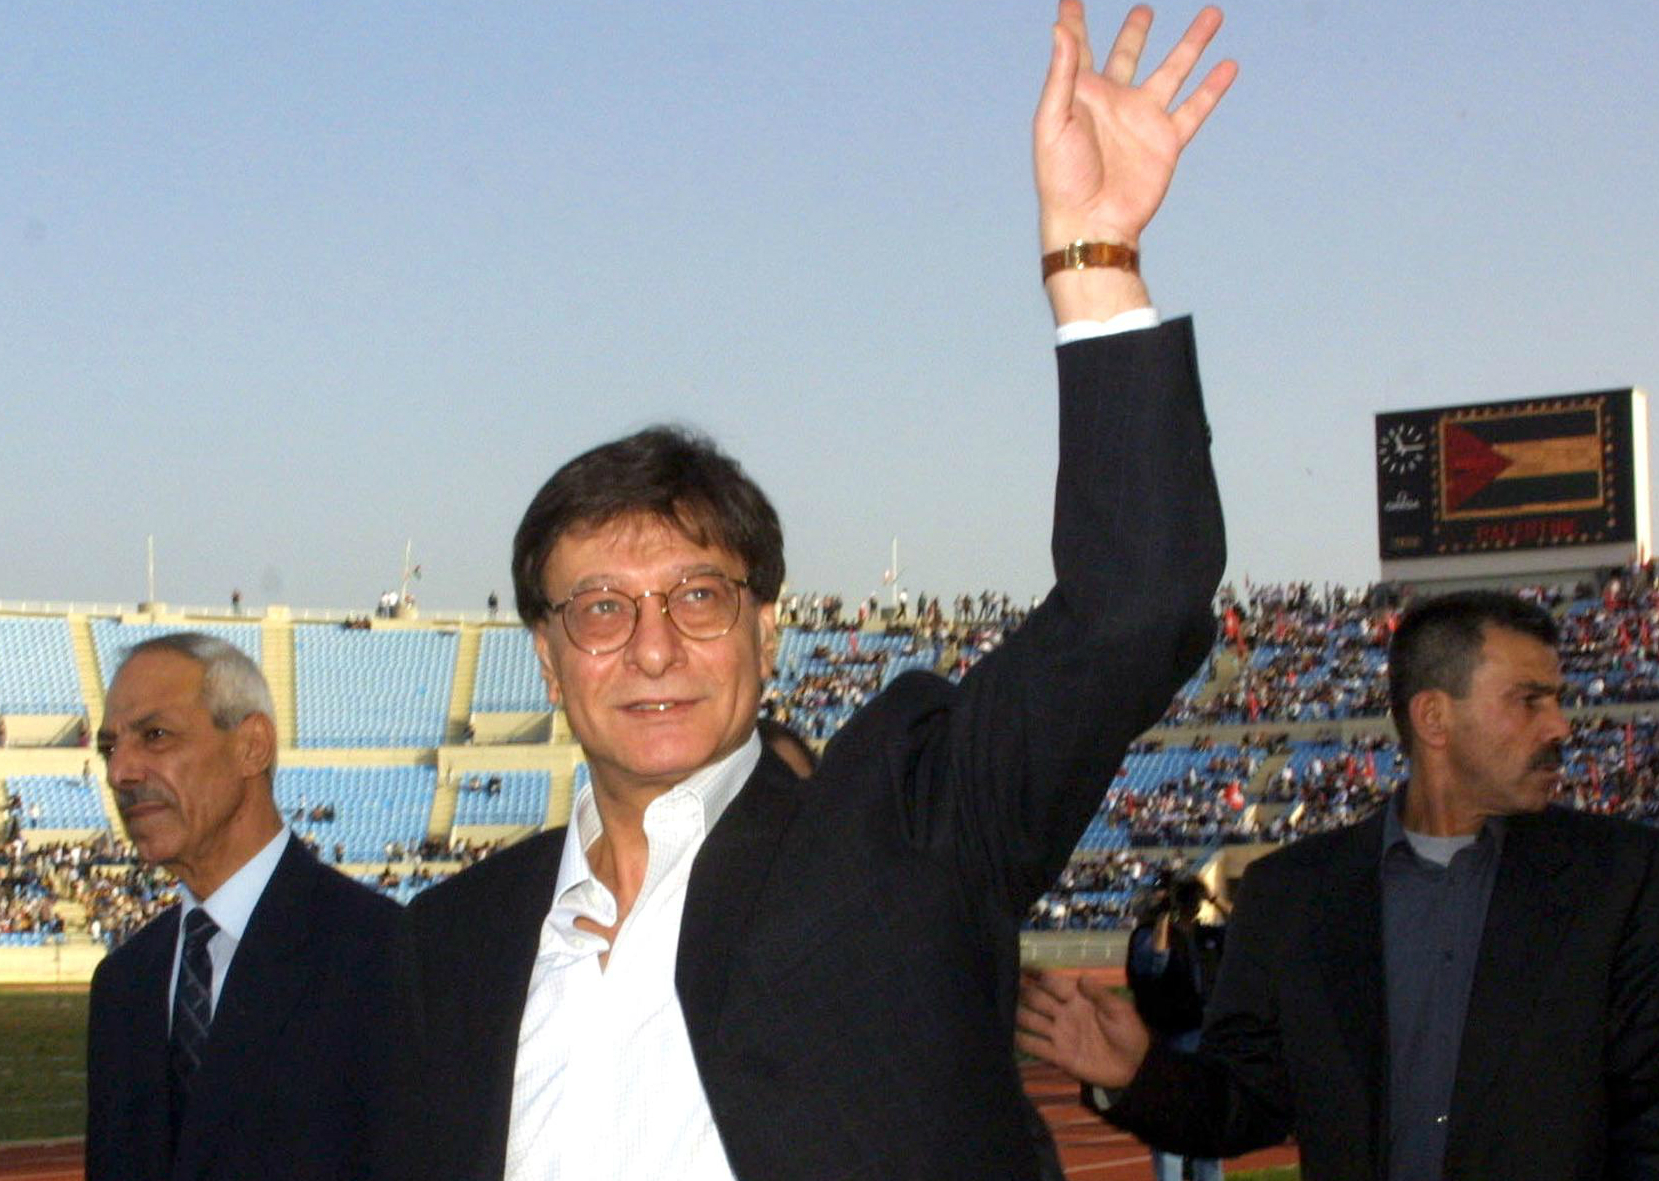 Palestinian poet Mahmoud Darwish waves to crowds before a concert and poetry reading in Beirut in April 2002 (AFP)